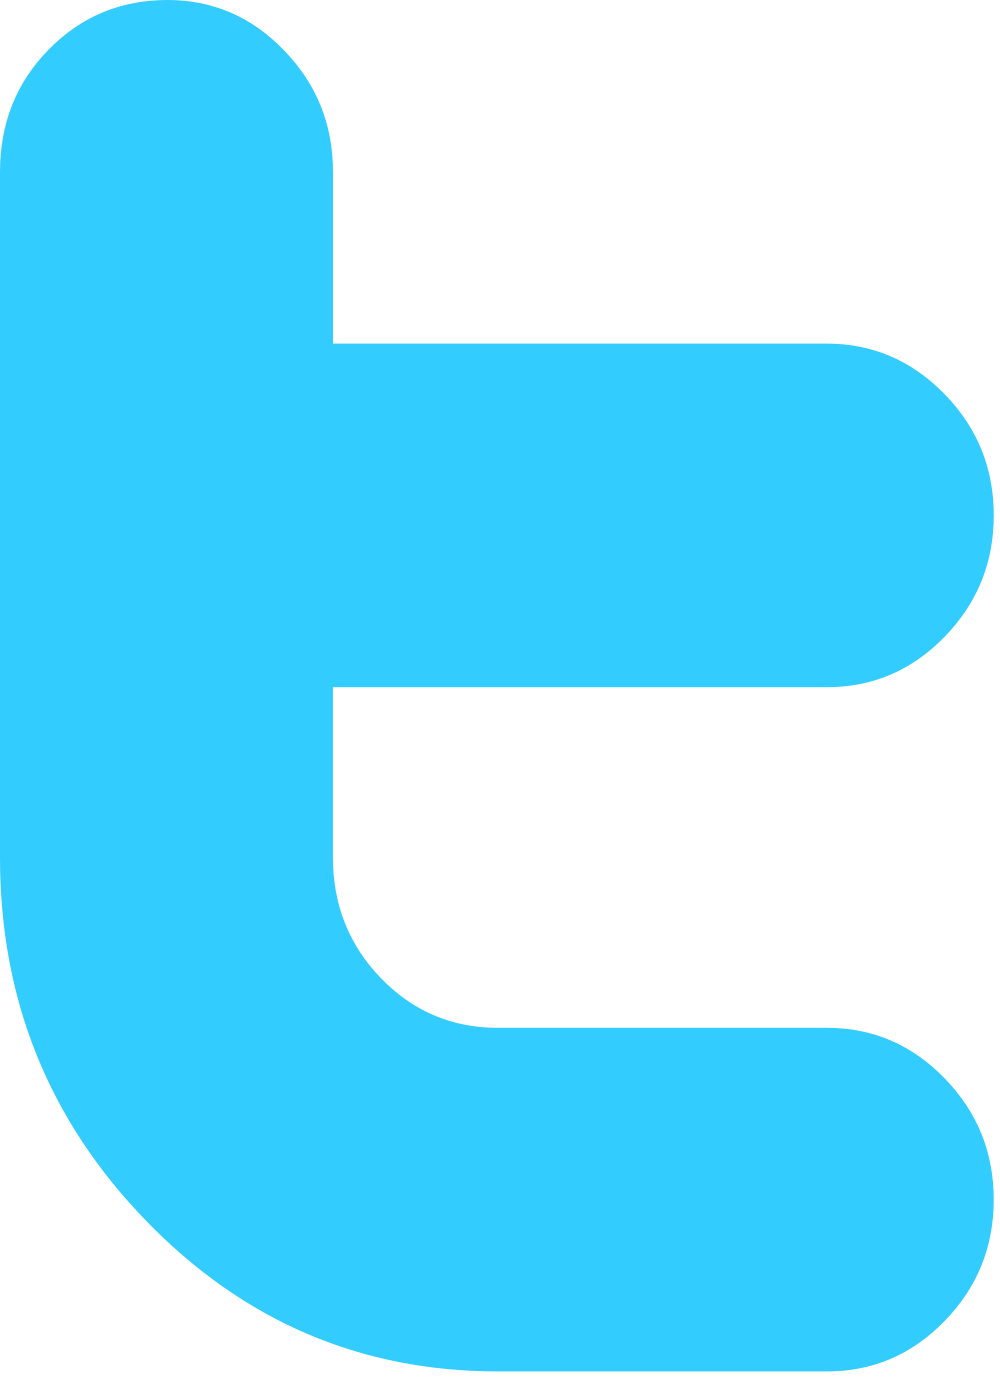 Twitter png logo. File initial svg wikimedia